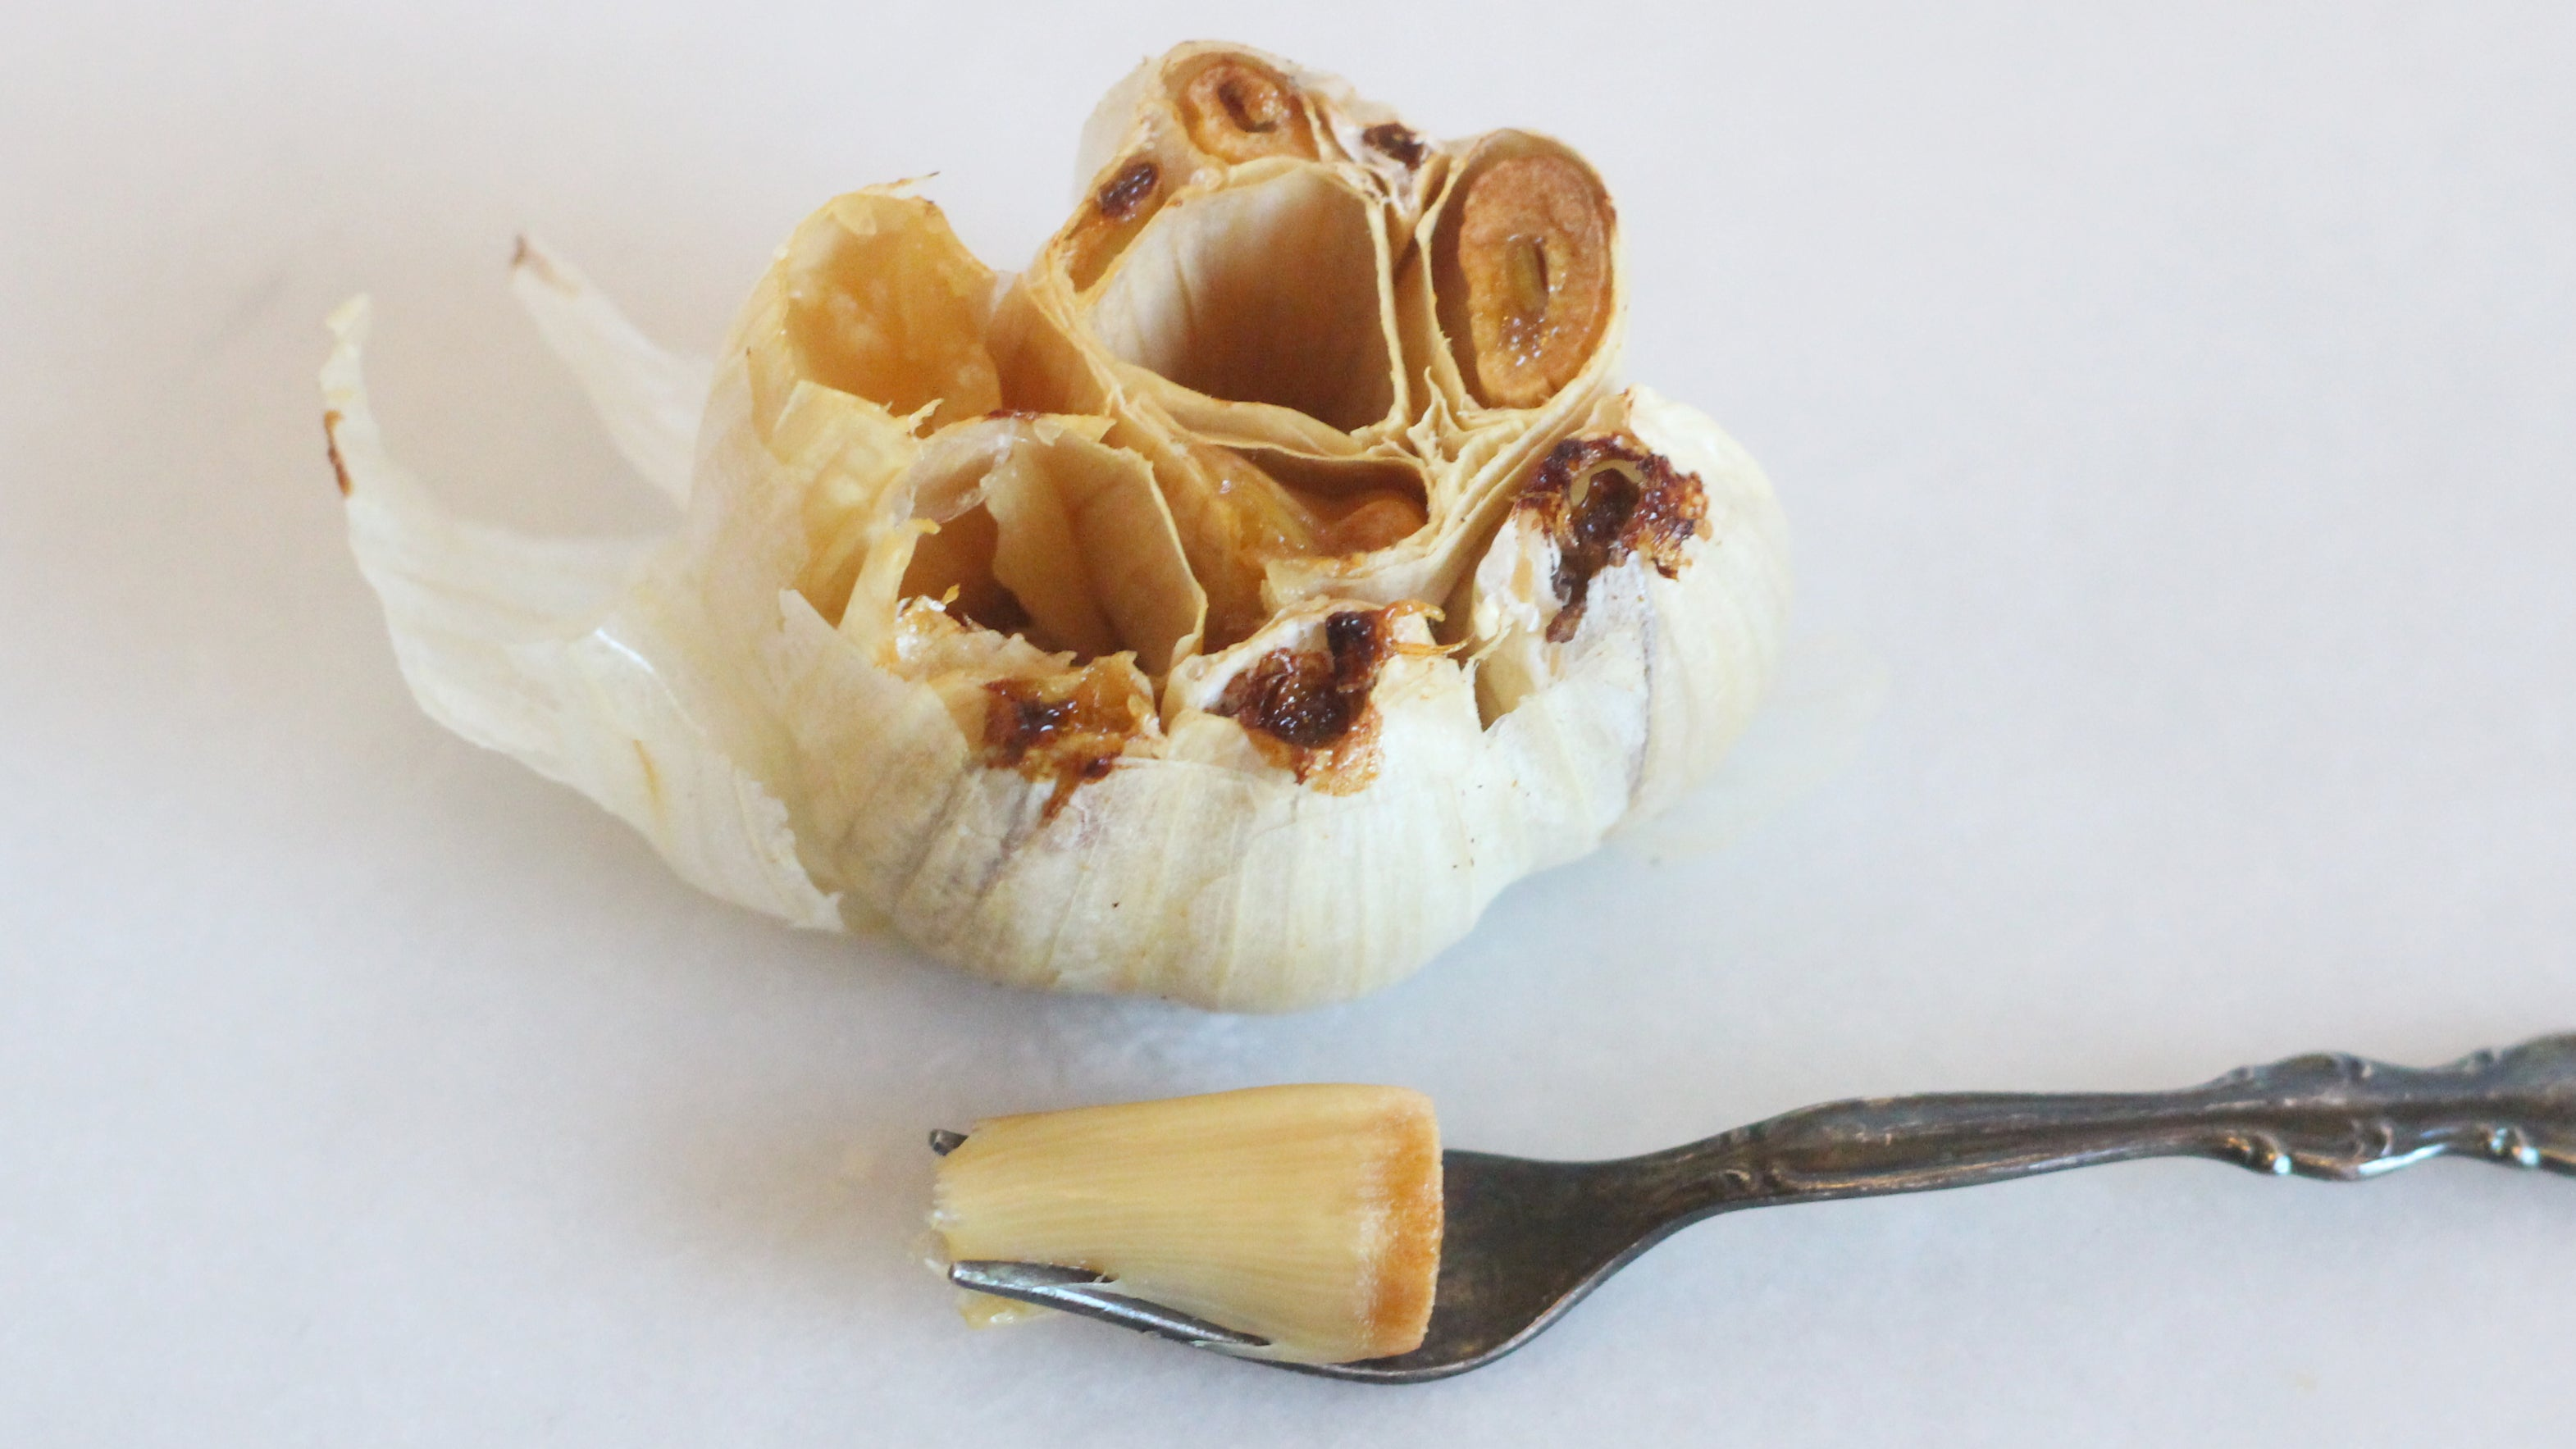 Easily Extract Roasted Garlic Cloves With This Tool